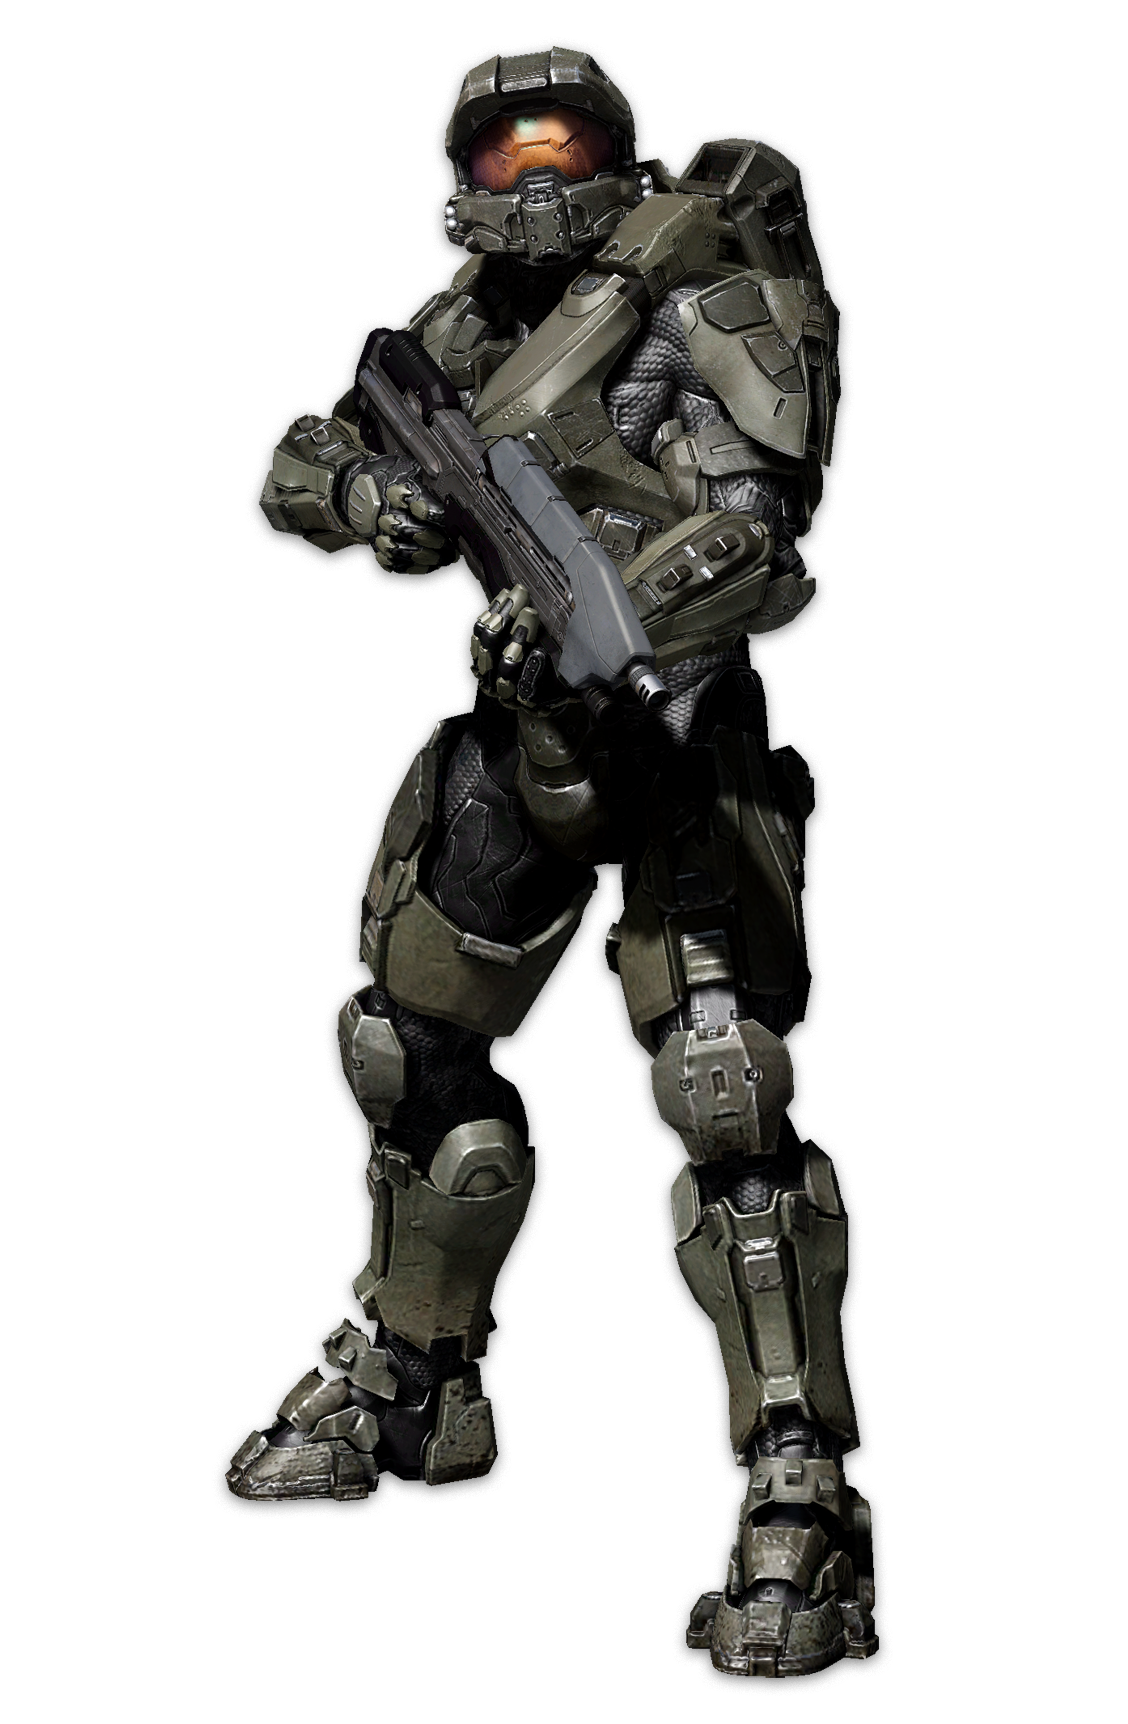 Image - Halo 4 masterchief render.png | VS Battles Wiki ...